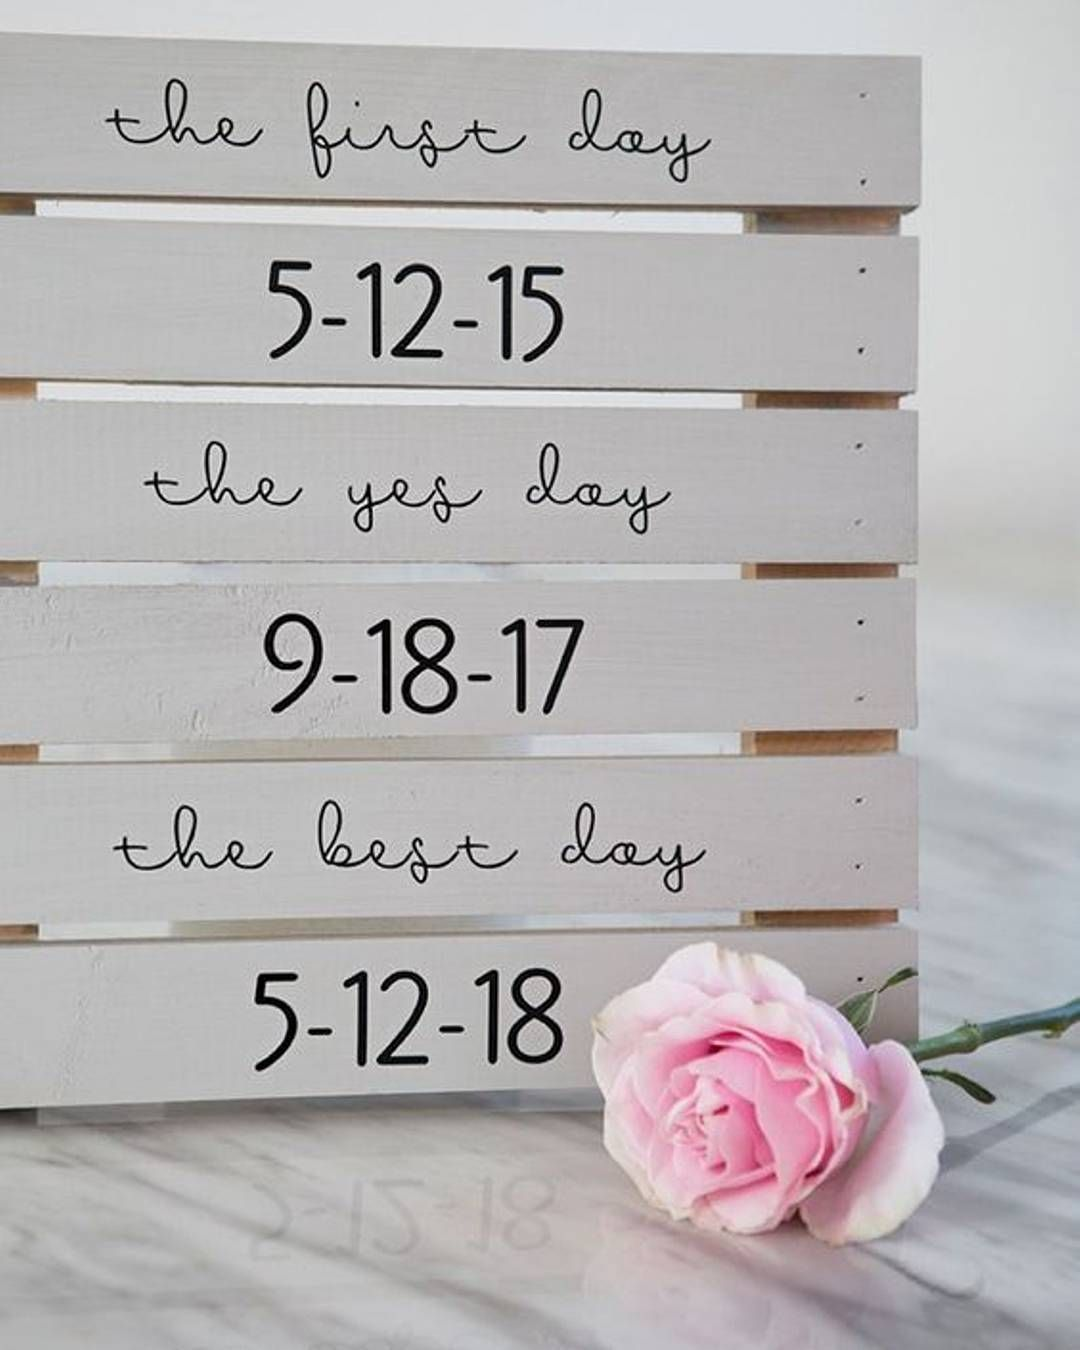 We love this simple yet stylish decor to highlight key dates so far ...